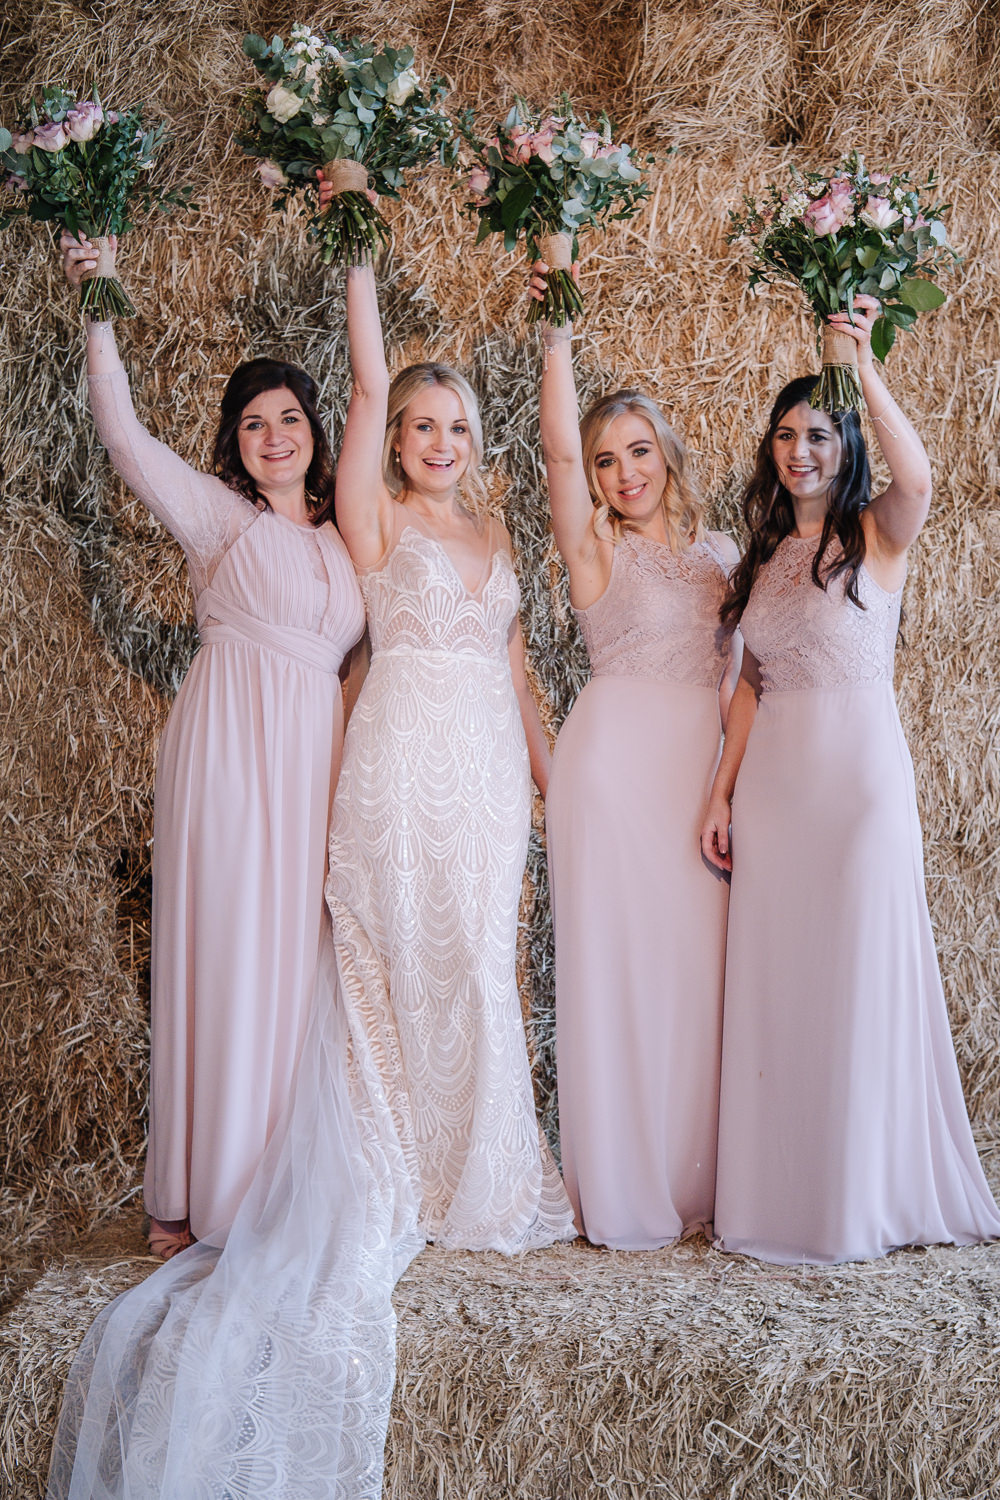 Pink Bridesmaid Bridesmaids Dress Dresses Owen House Wedding Barn Nessworthy Photography